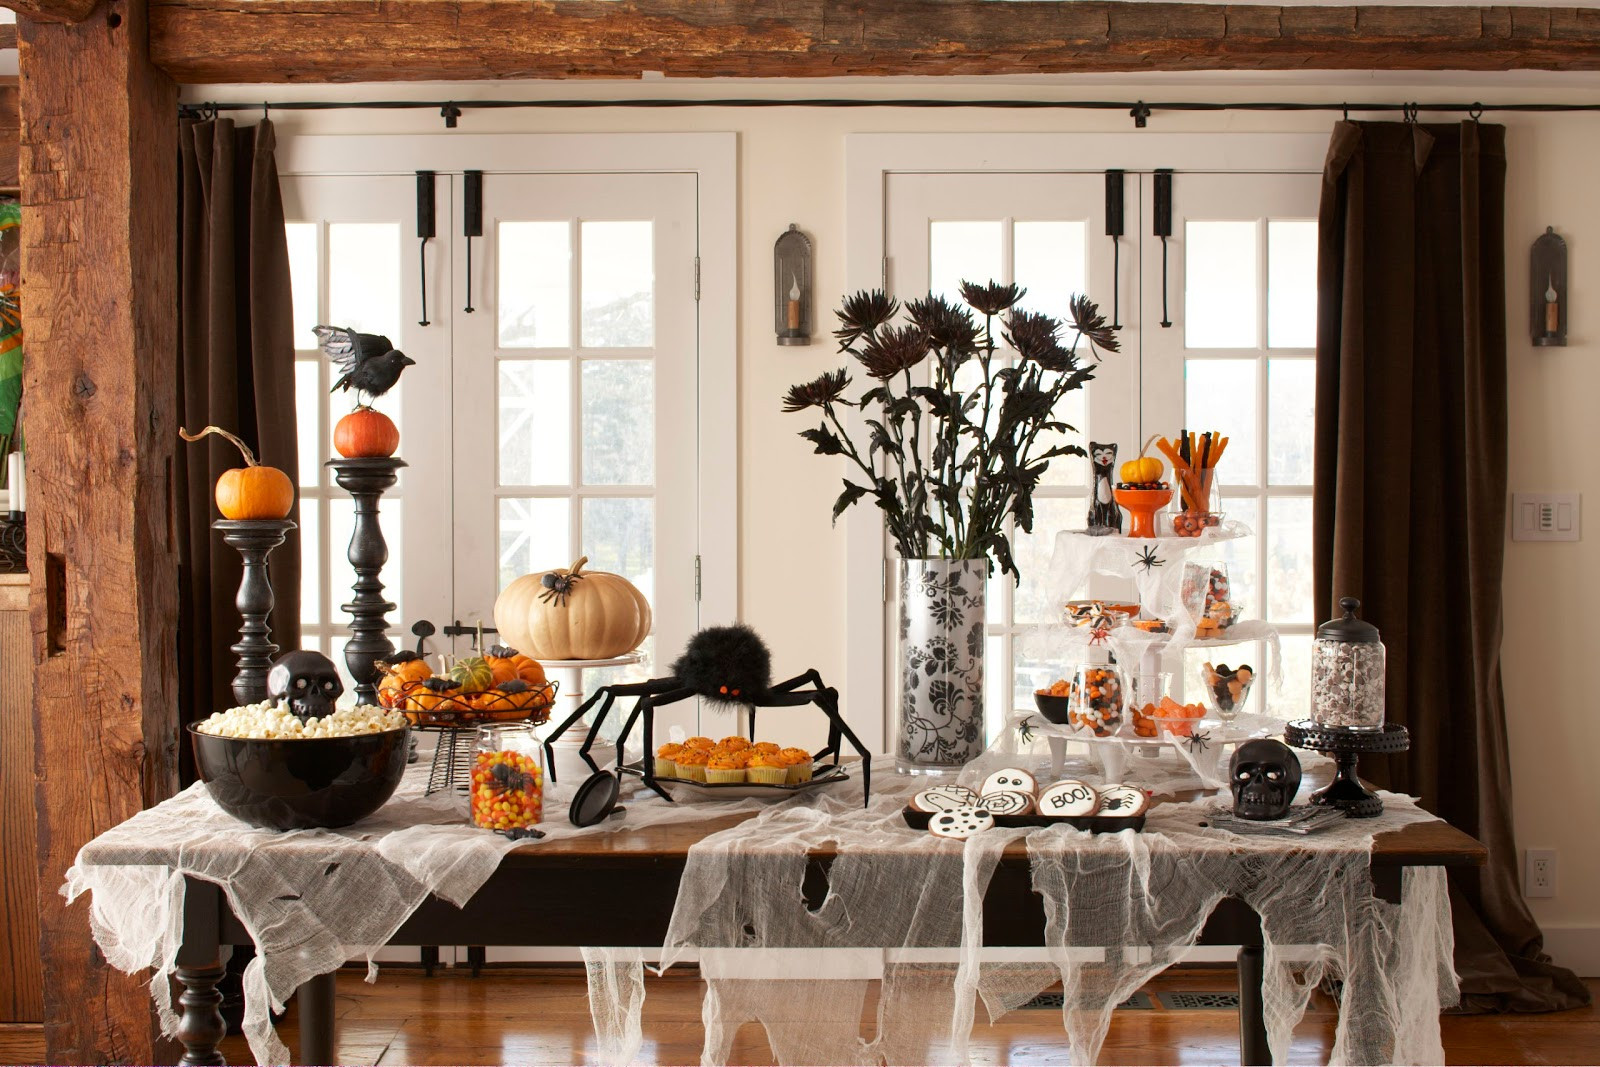 Diy Halloween Party Decoration Ideas  Karin Lidbeck Clever Halloween party ideas Easy last